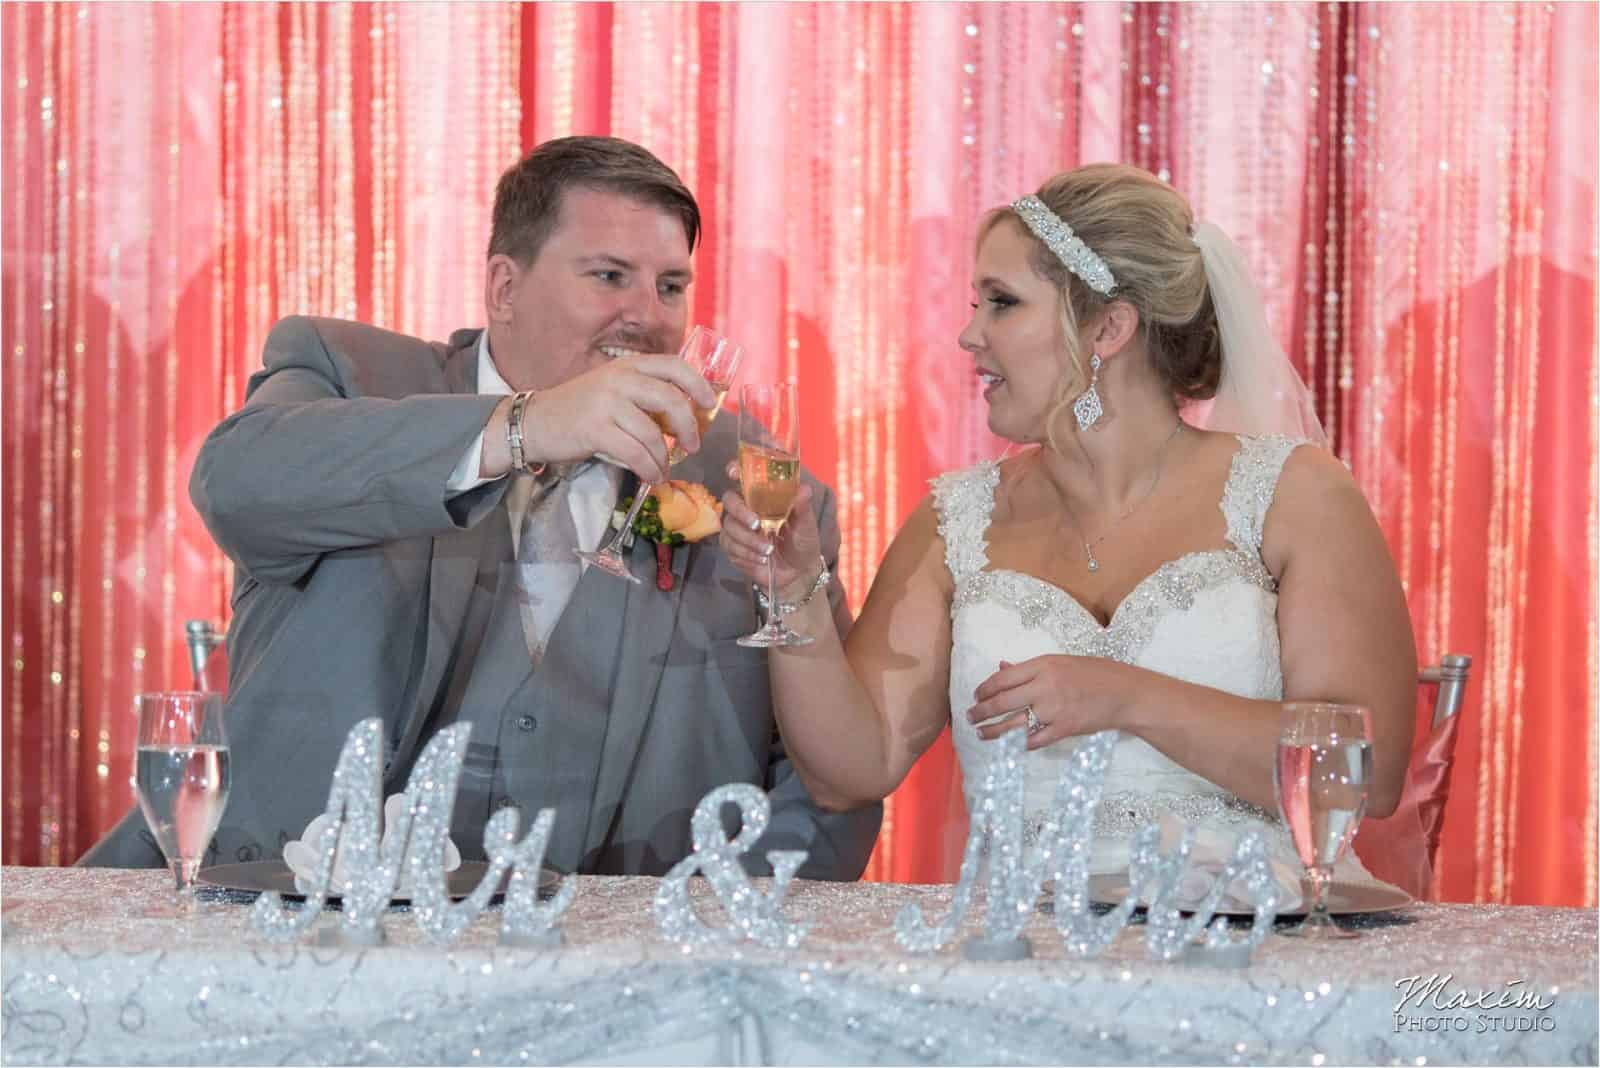 Top of the Market Dayton Ohio Wedding Reception toast